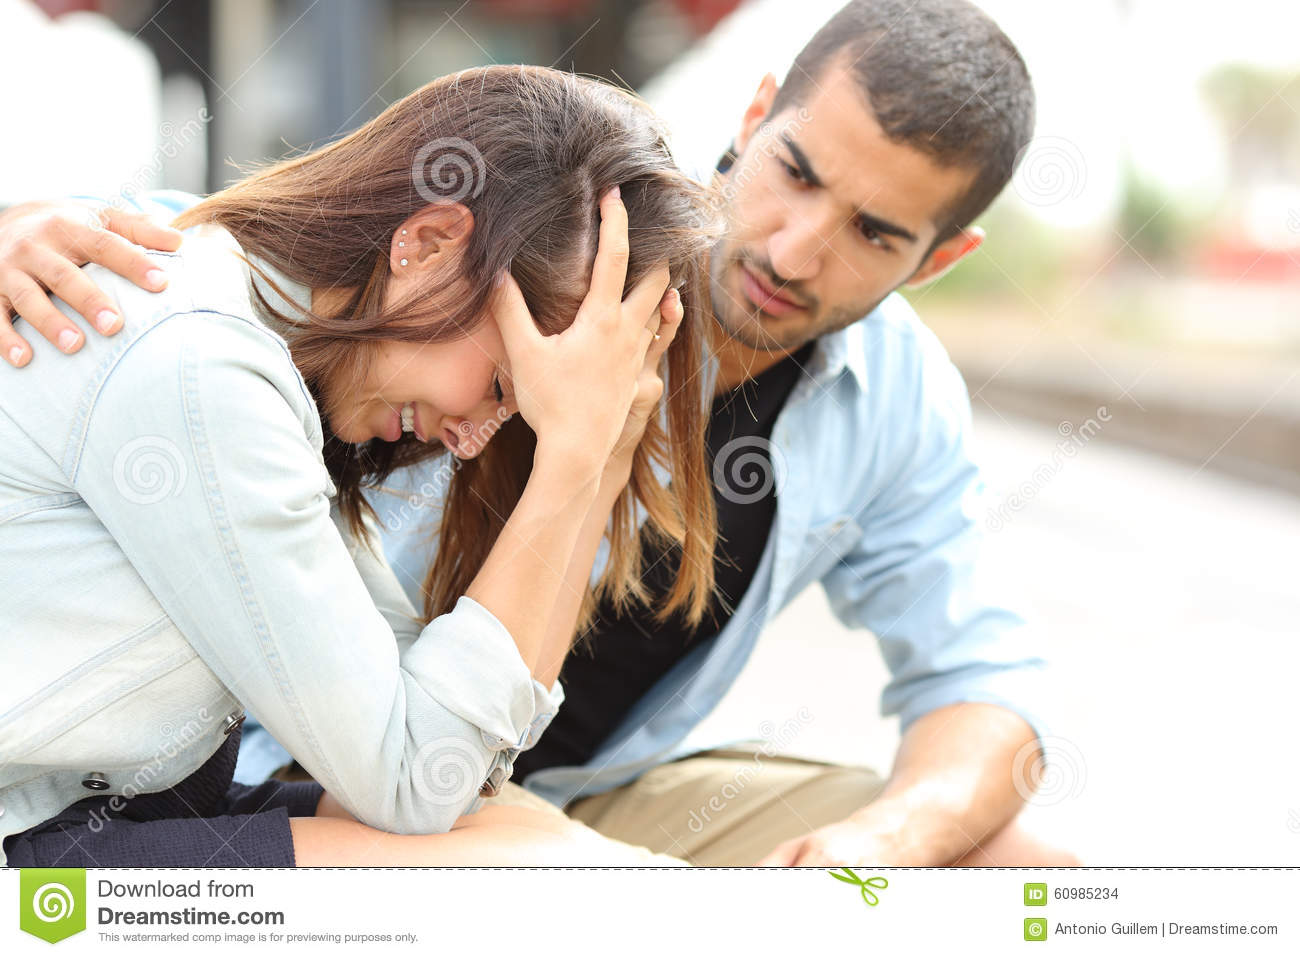 Muslim man comforting a sad girl mourning